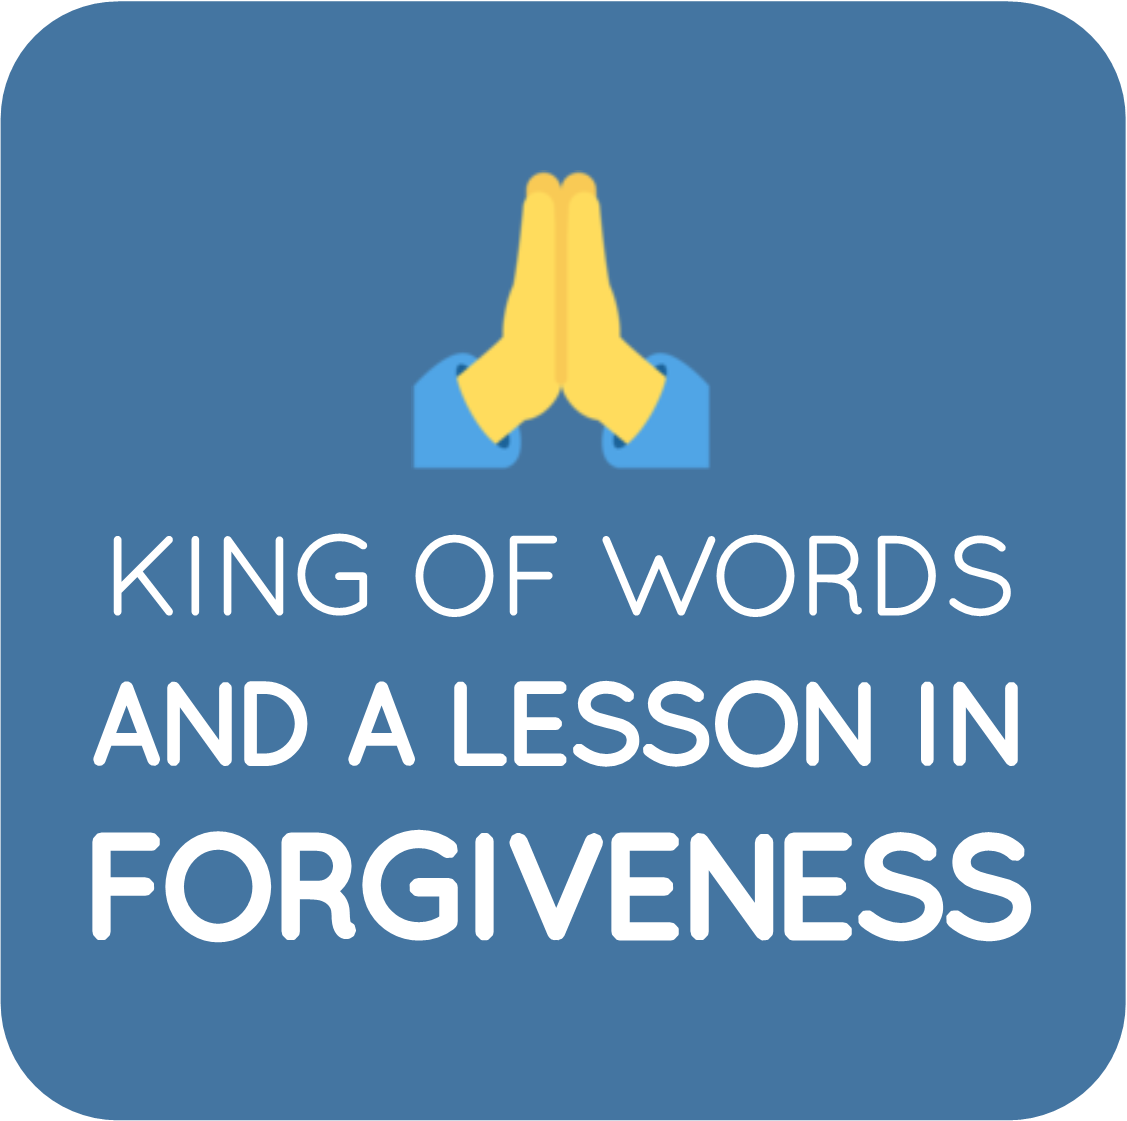 04-king of swords lesson in forgiveness.png